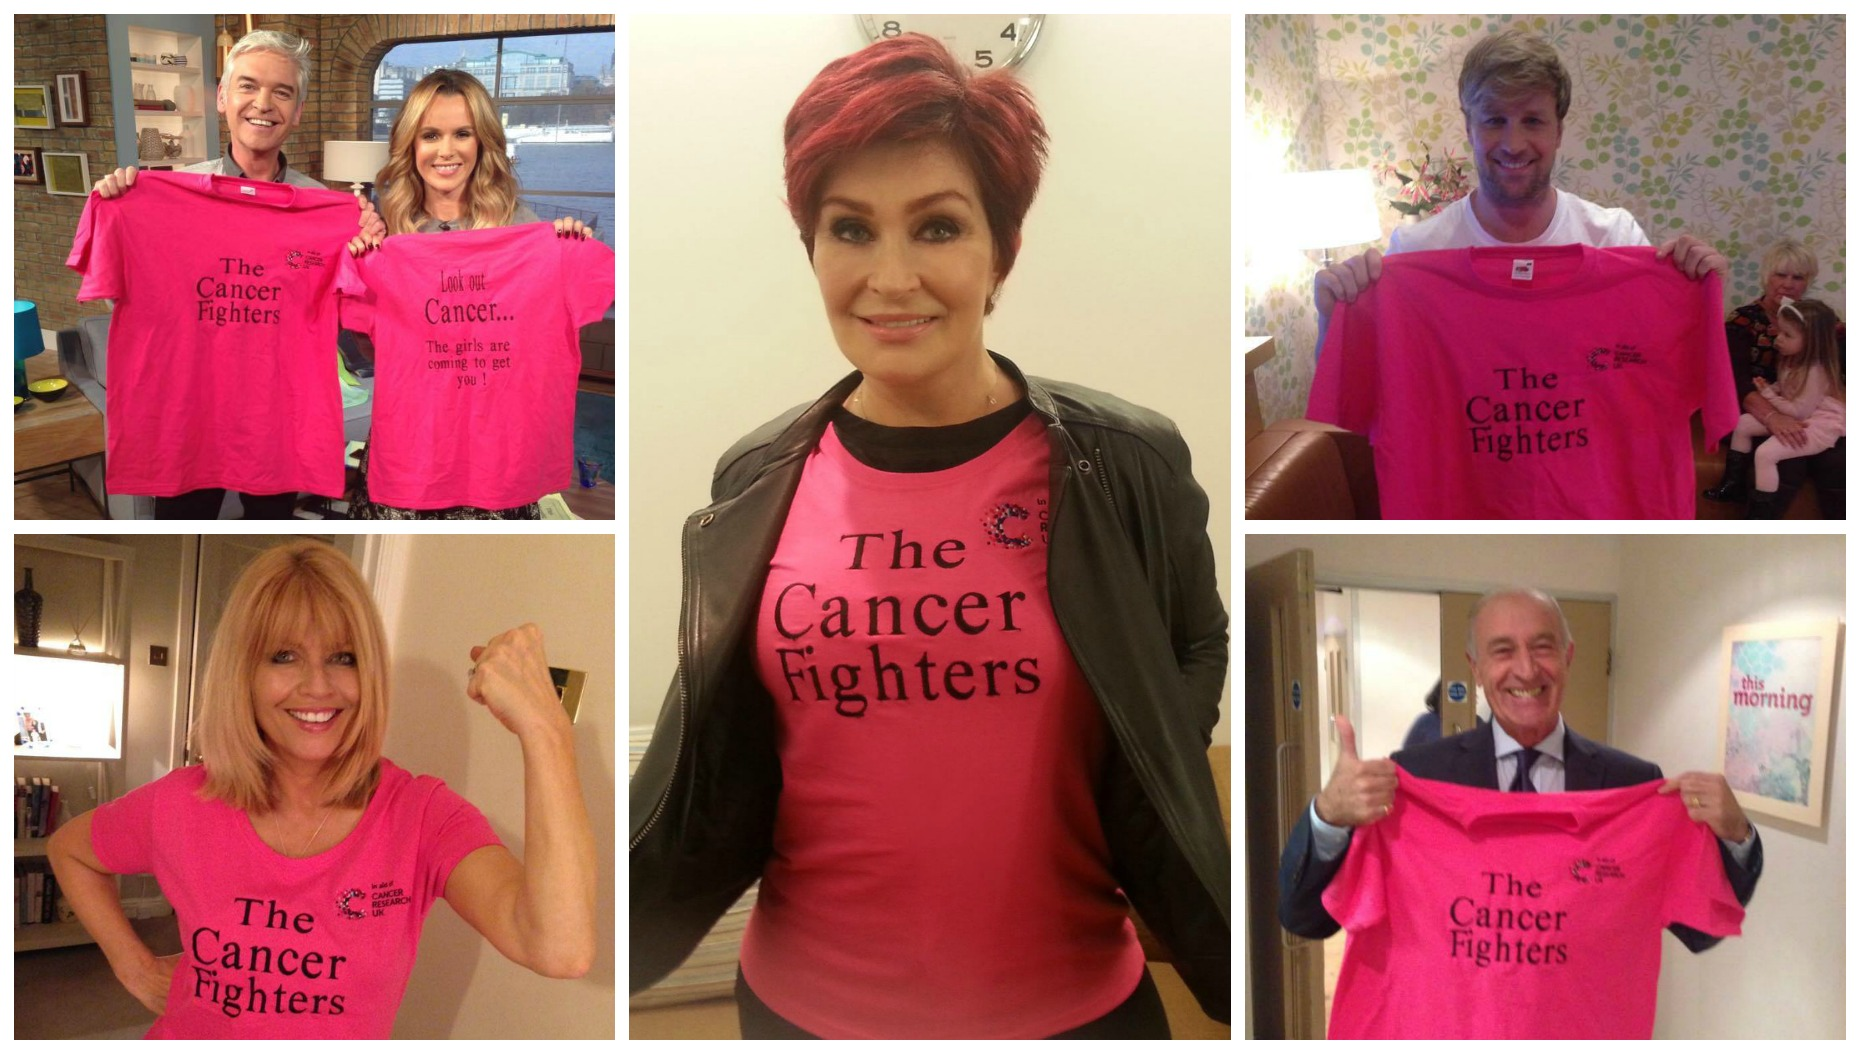 Celebrities offered their support for the cause and have been wearing their custom t-shirts.